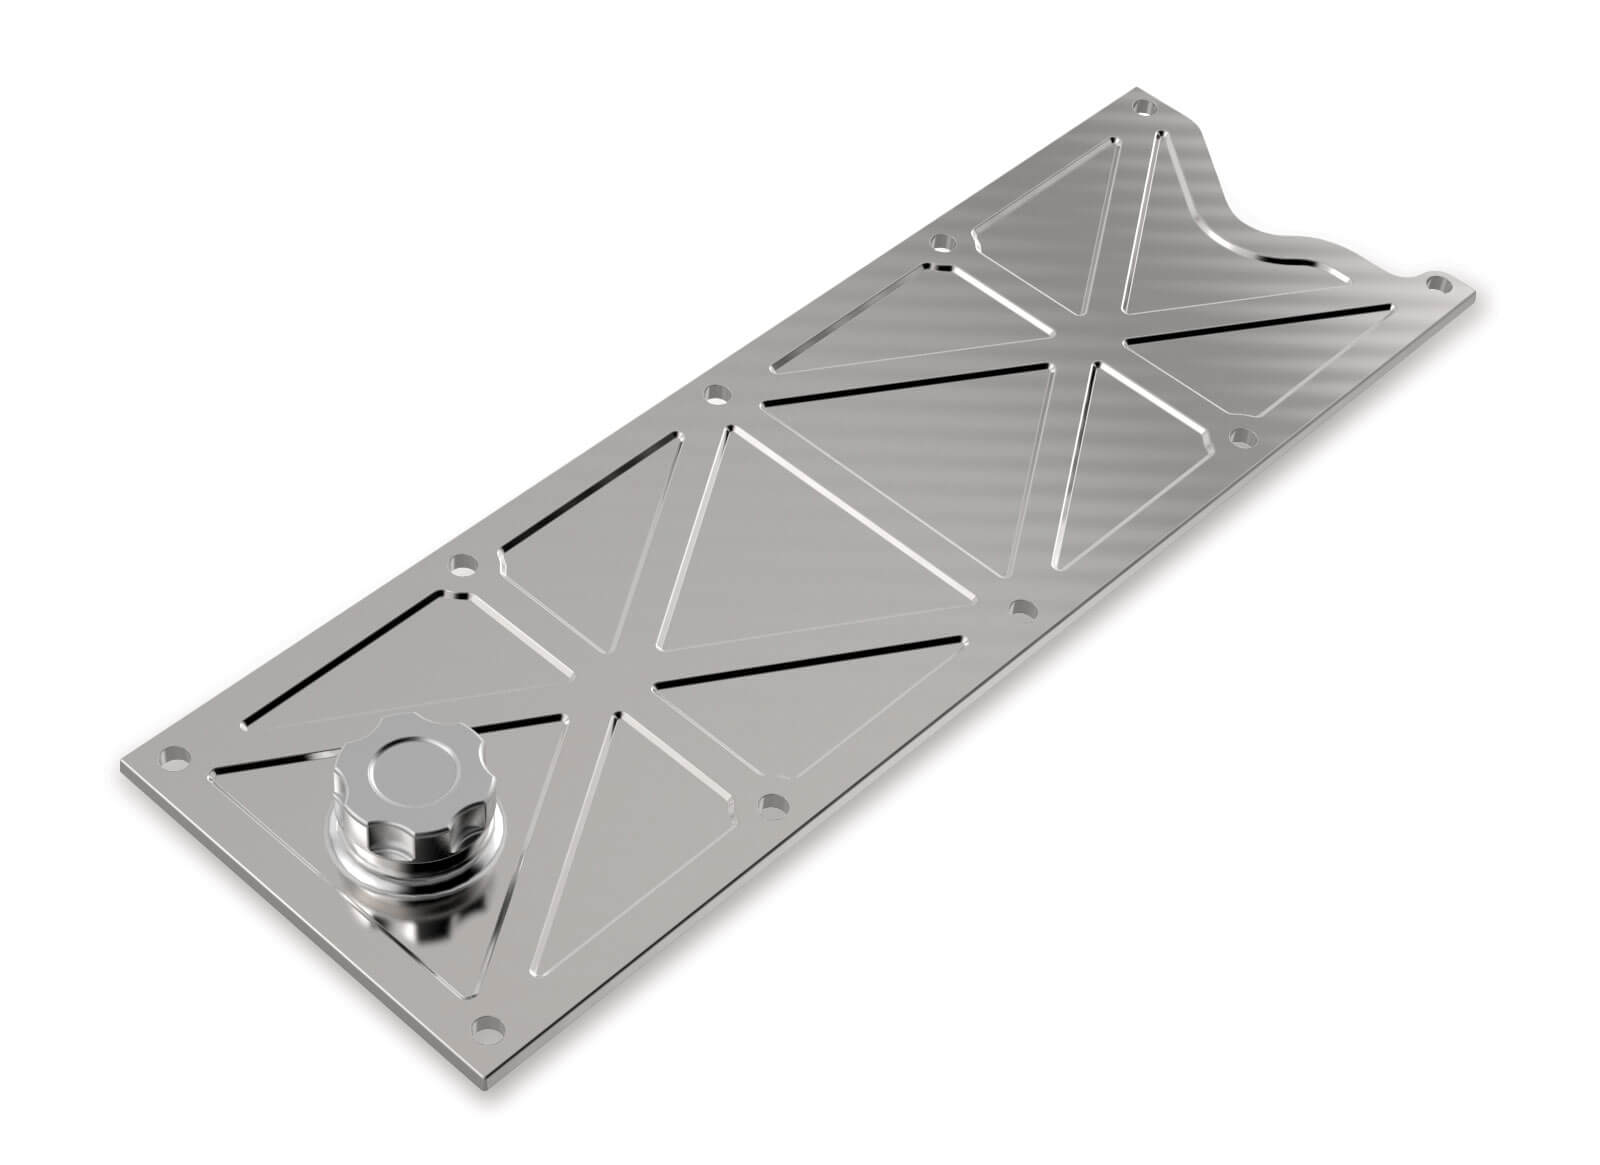 Holley LS1/LS6 Valley Cover with Oil Fill - Natural Billet